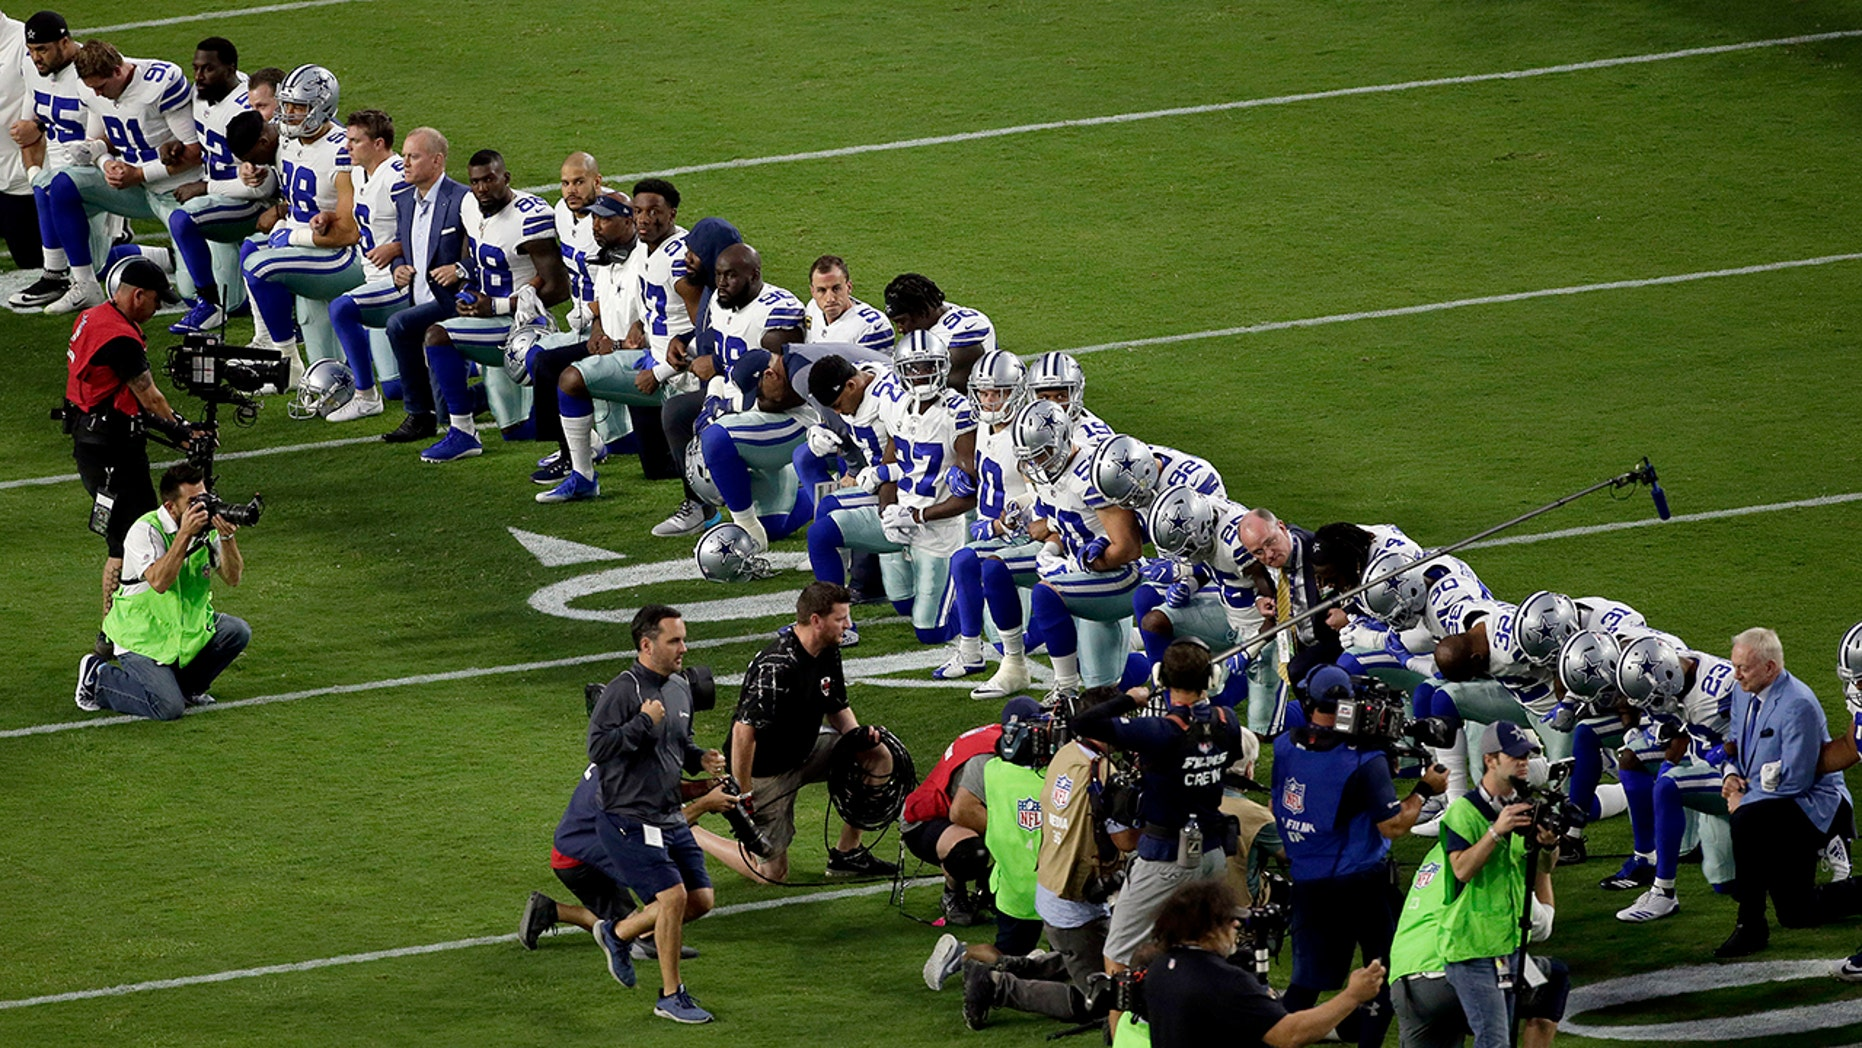 The Dallas Cowboys, led by owner Jerry Jones, far right, take a knee prior to the national anthem prior to an NFL football game against the Arizona Cardinals, Monday, Sept. 25, 2017, in Glendale, Ariz.